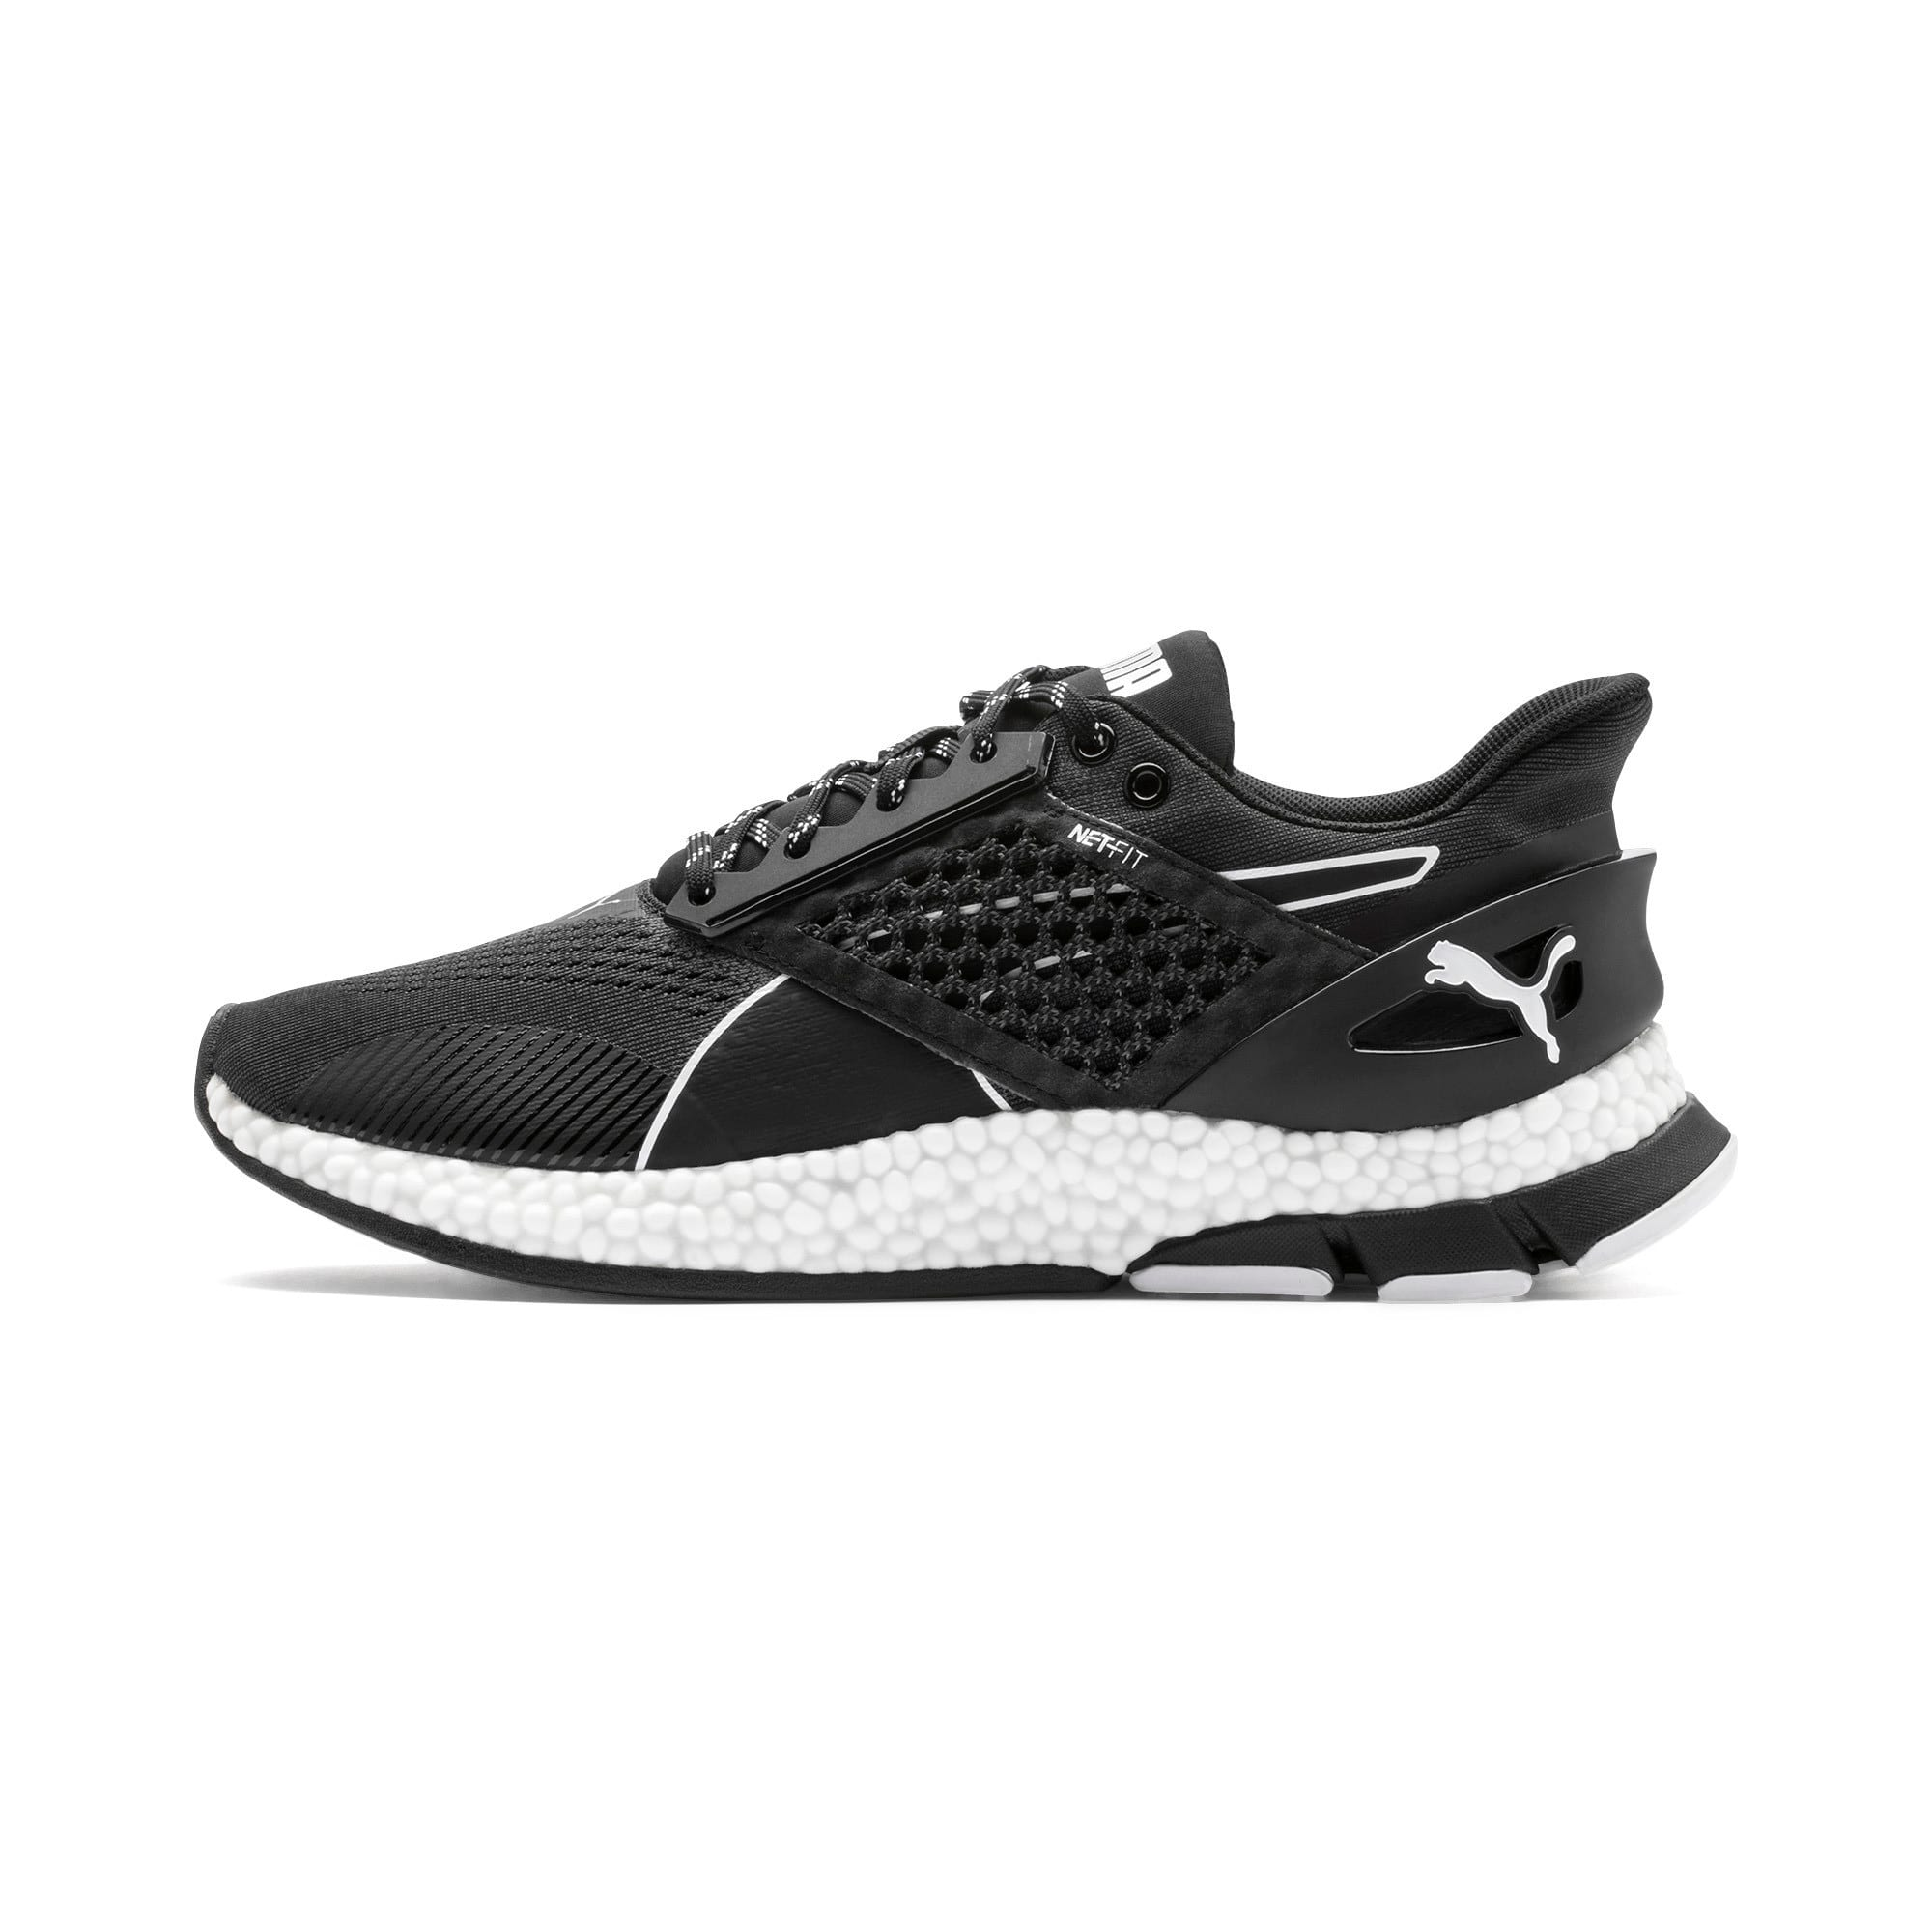 Thumbnail 1 of HYBRID NETFIT Astro Men's Running Shoes, Puma Black-Puma White, medium